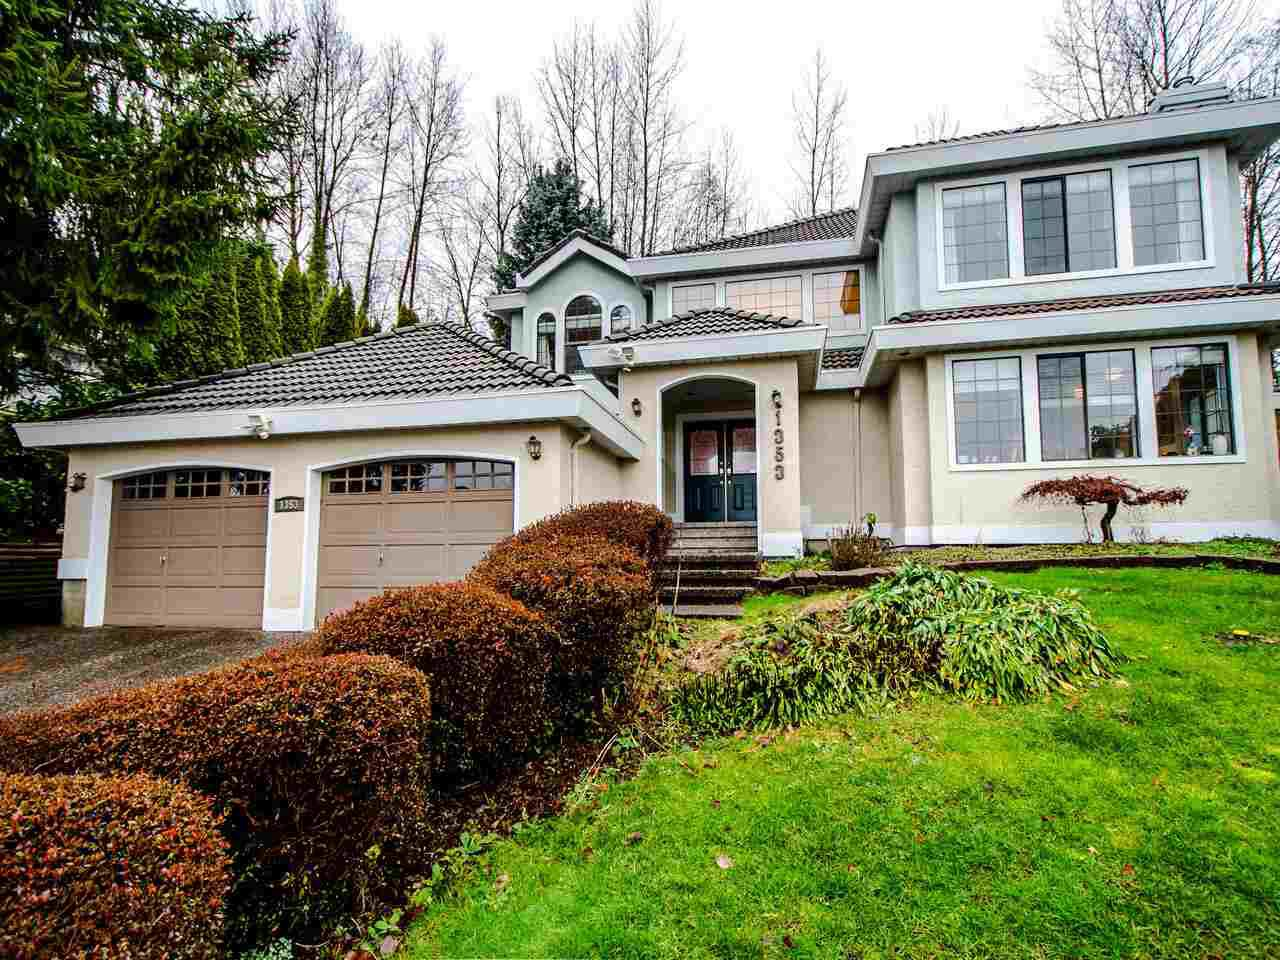 Main Photo: 1353 HONEYSUCKLE Lane in Coquitlam: Westwood Summit CQ House for sale : MLS®# R2528493